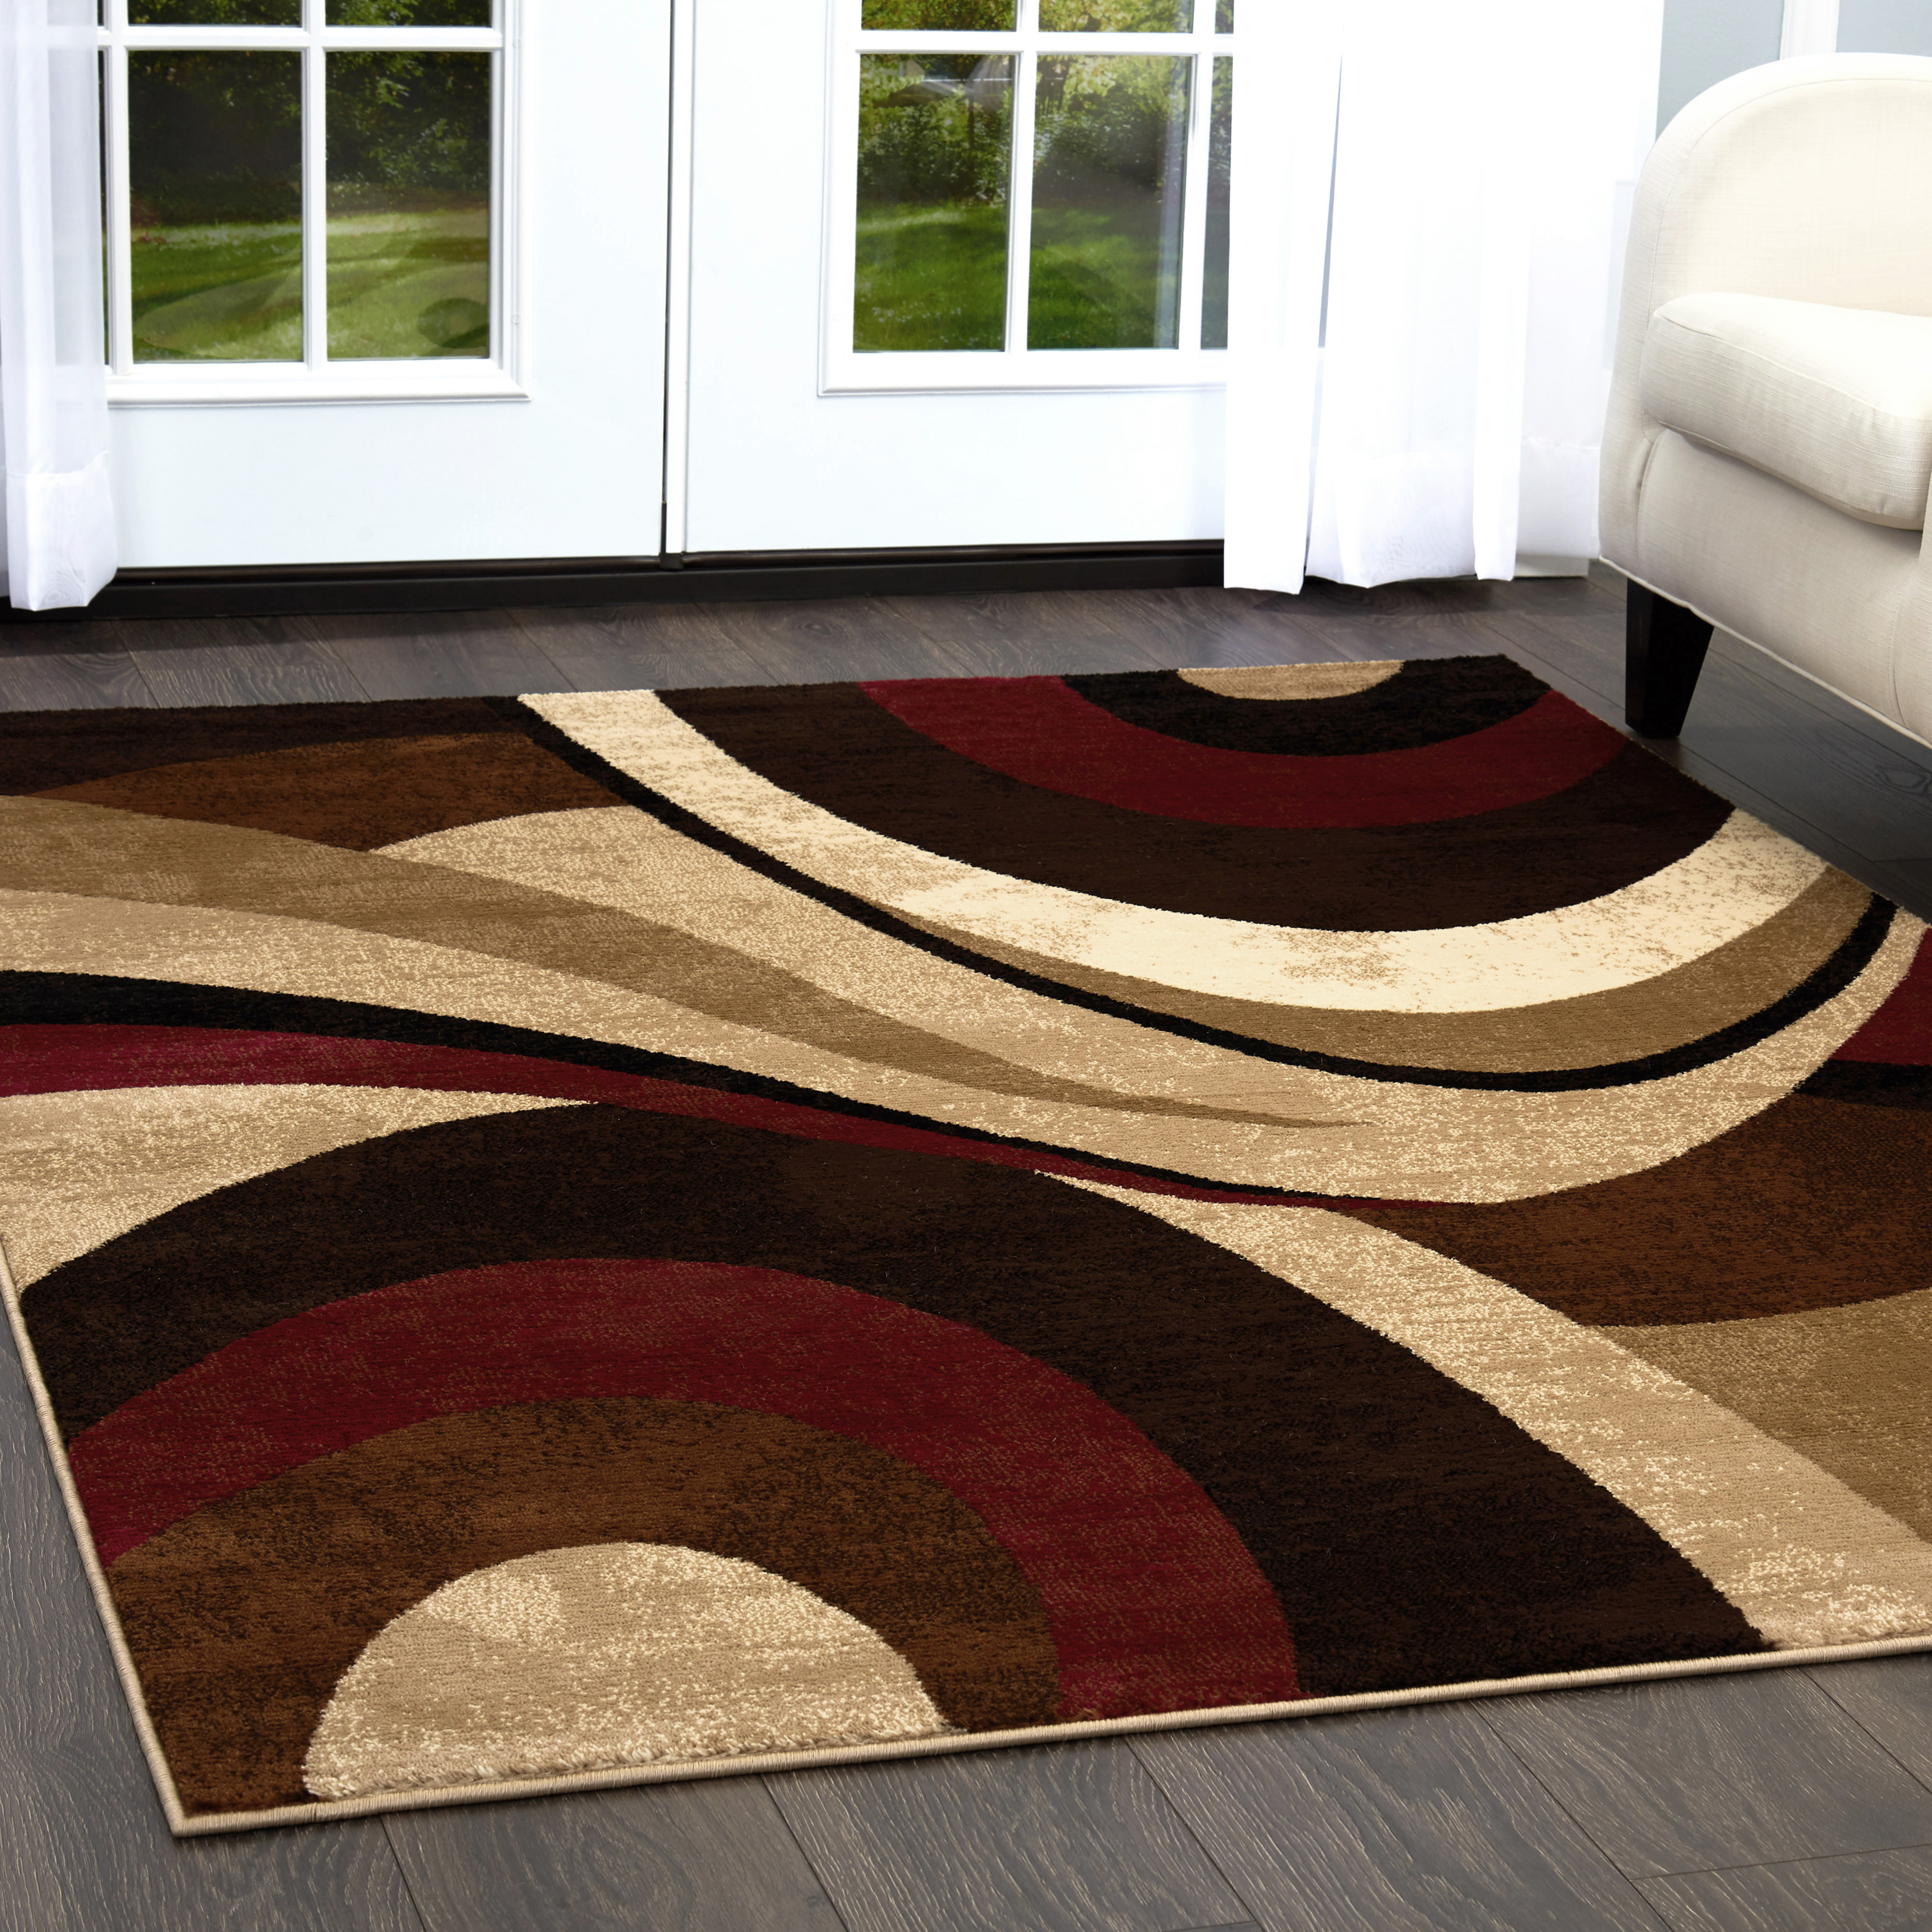 Home Dynamix Tribeca Collection Contemporary Area Rug for Modern     Home Dynamix Tribeca Collection Contemporary Area Rug for Modern Home D    cor